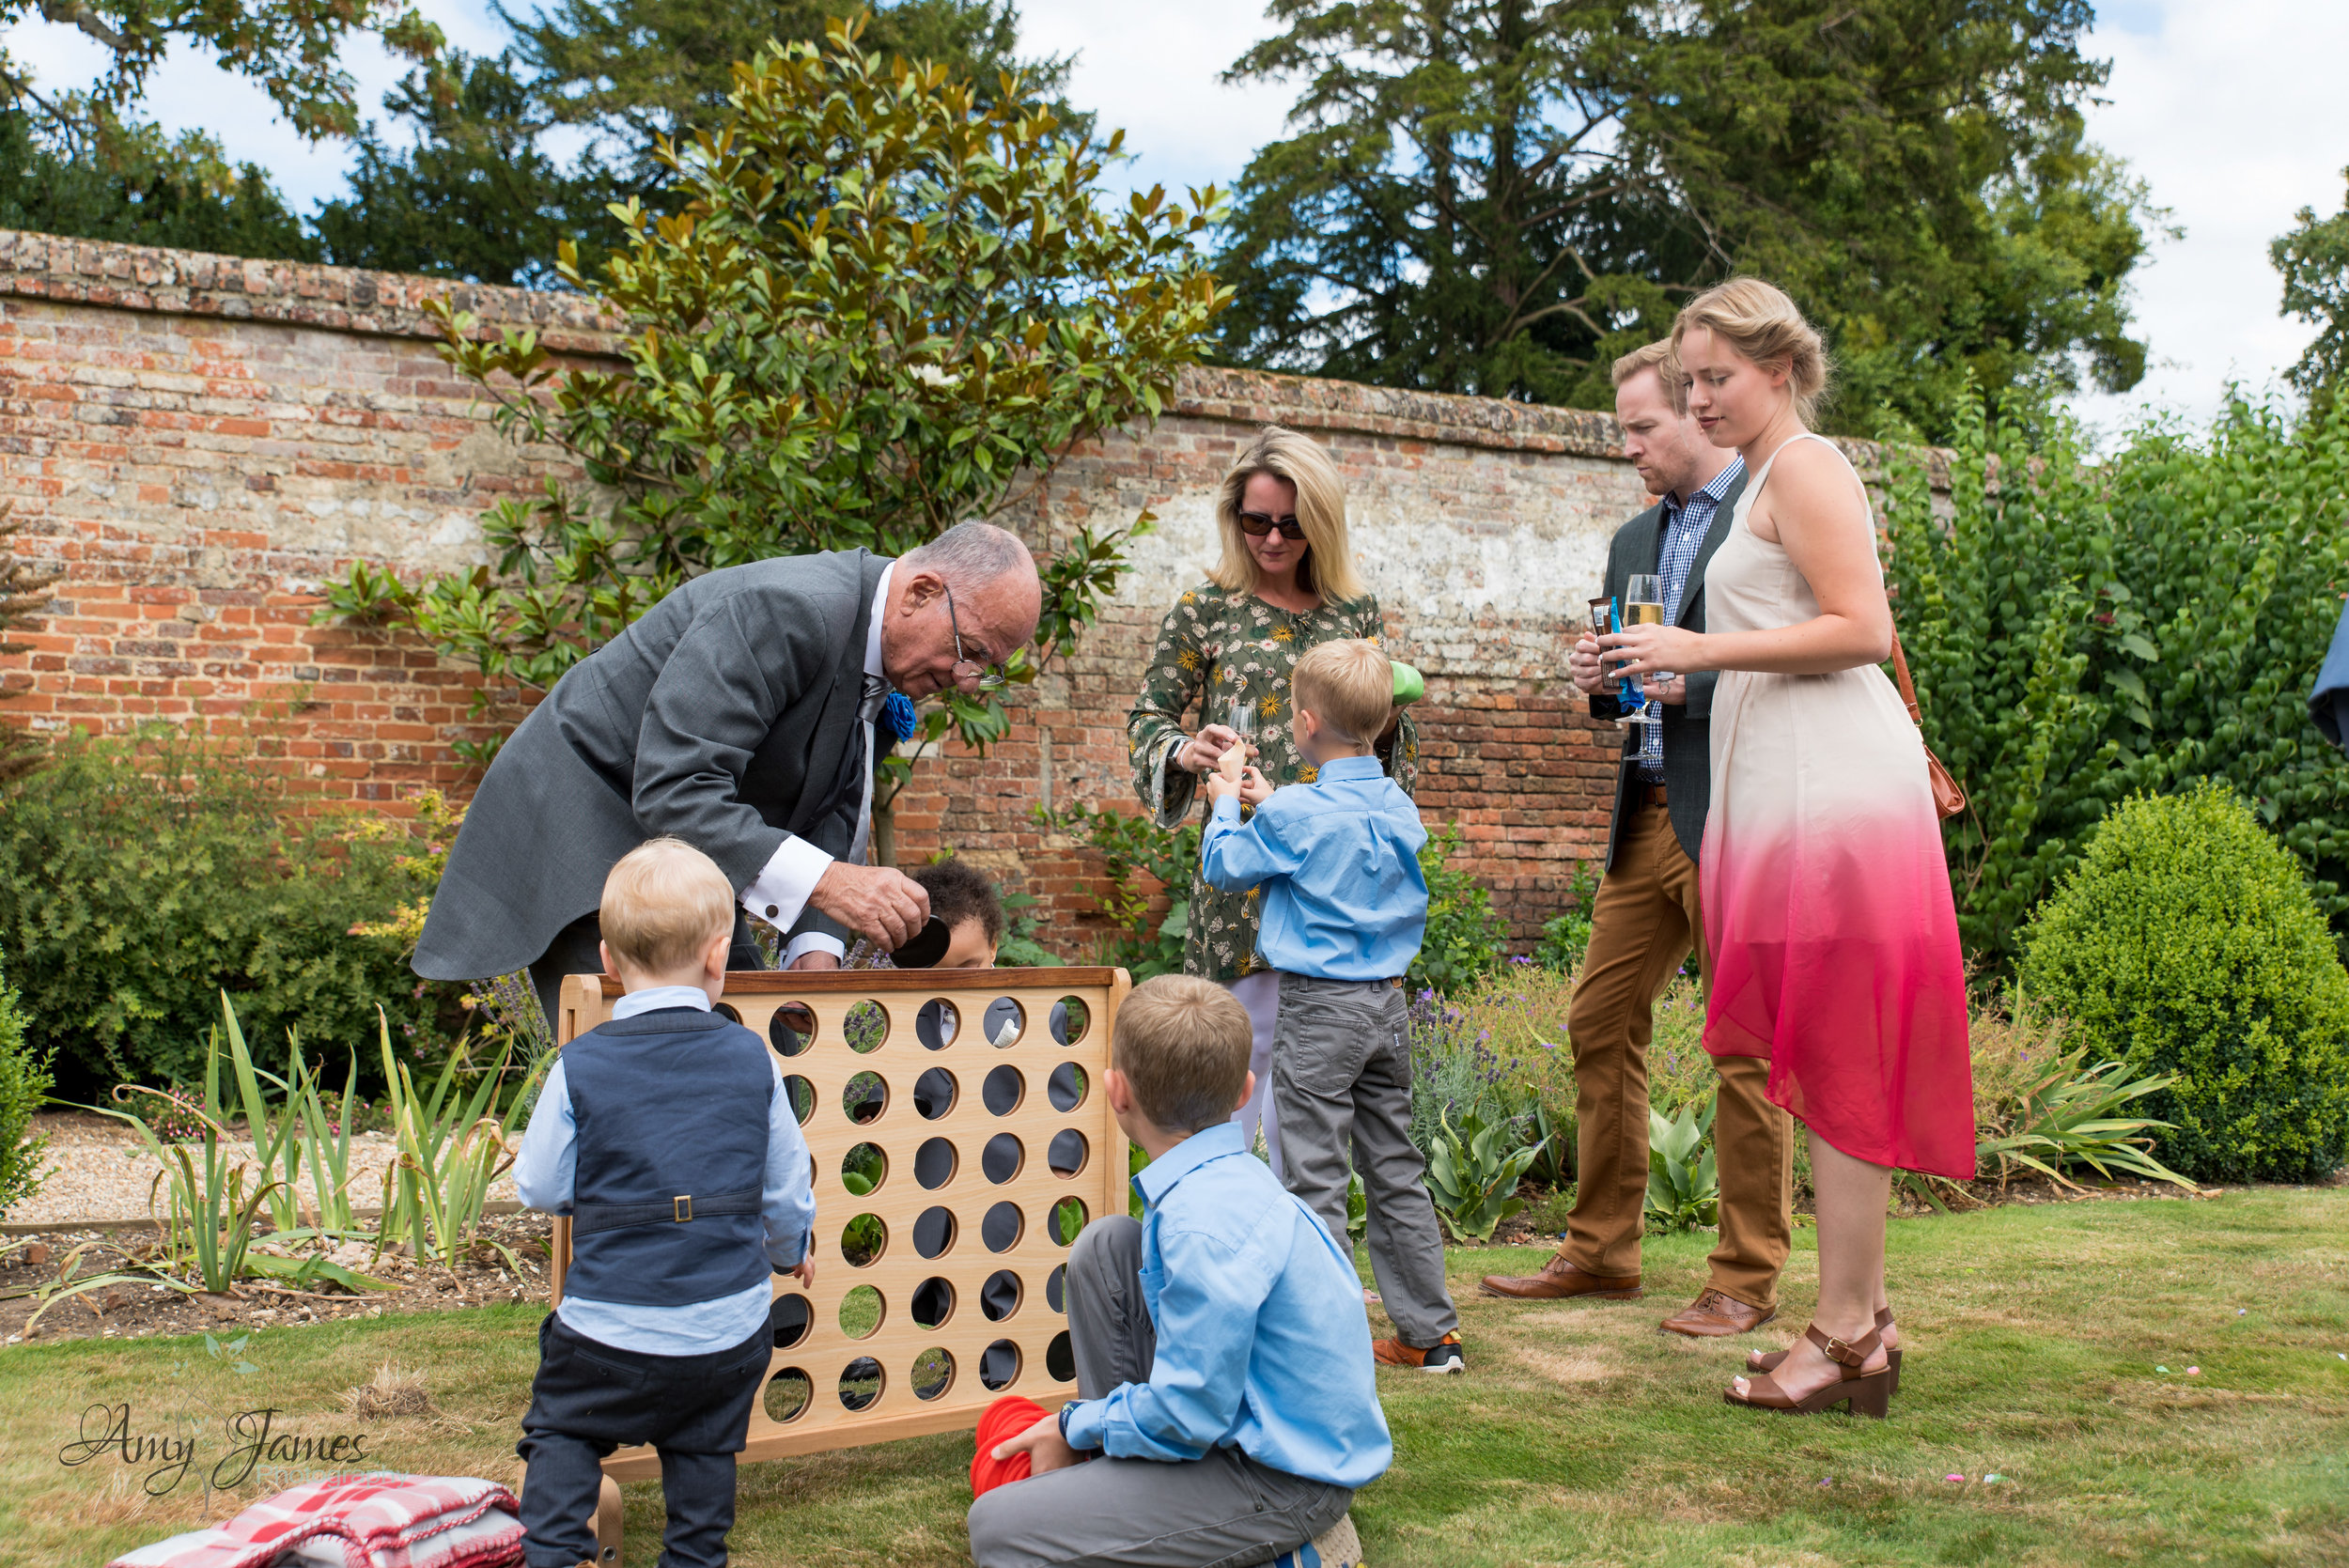 Garden games for outdoor wedding venue the Four Season hotel in Hampshire by Amy James Photography documentary wedding photographer for Hampshire and Surrey